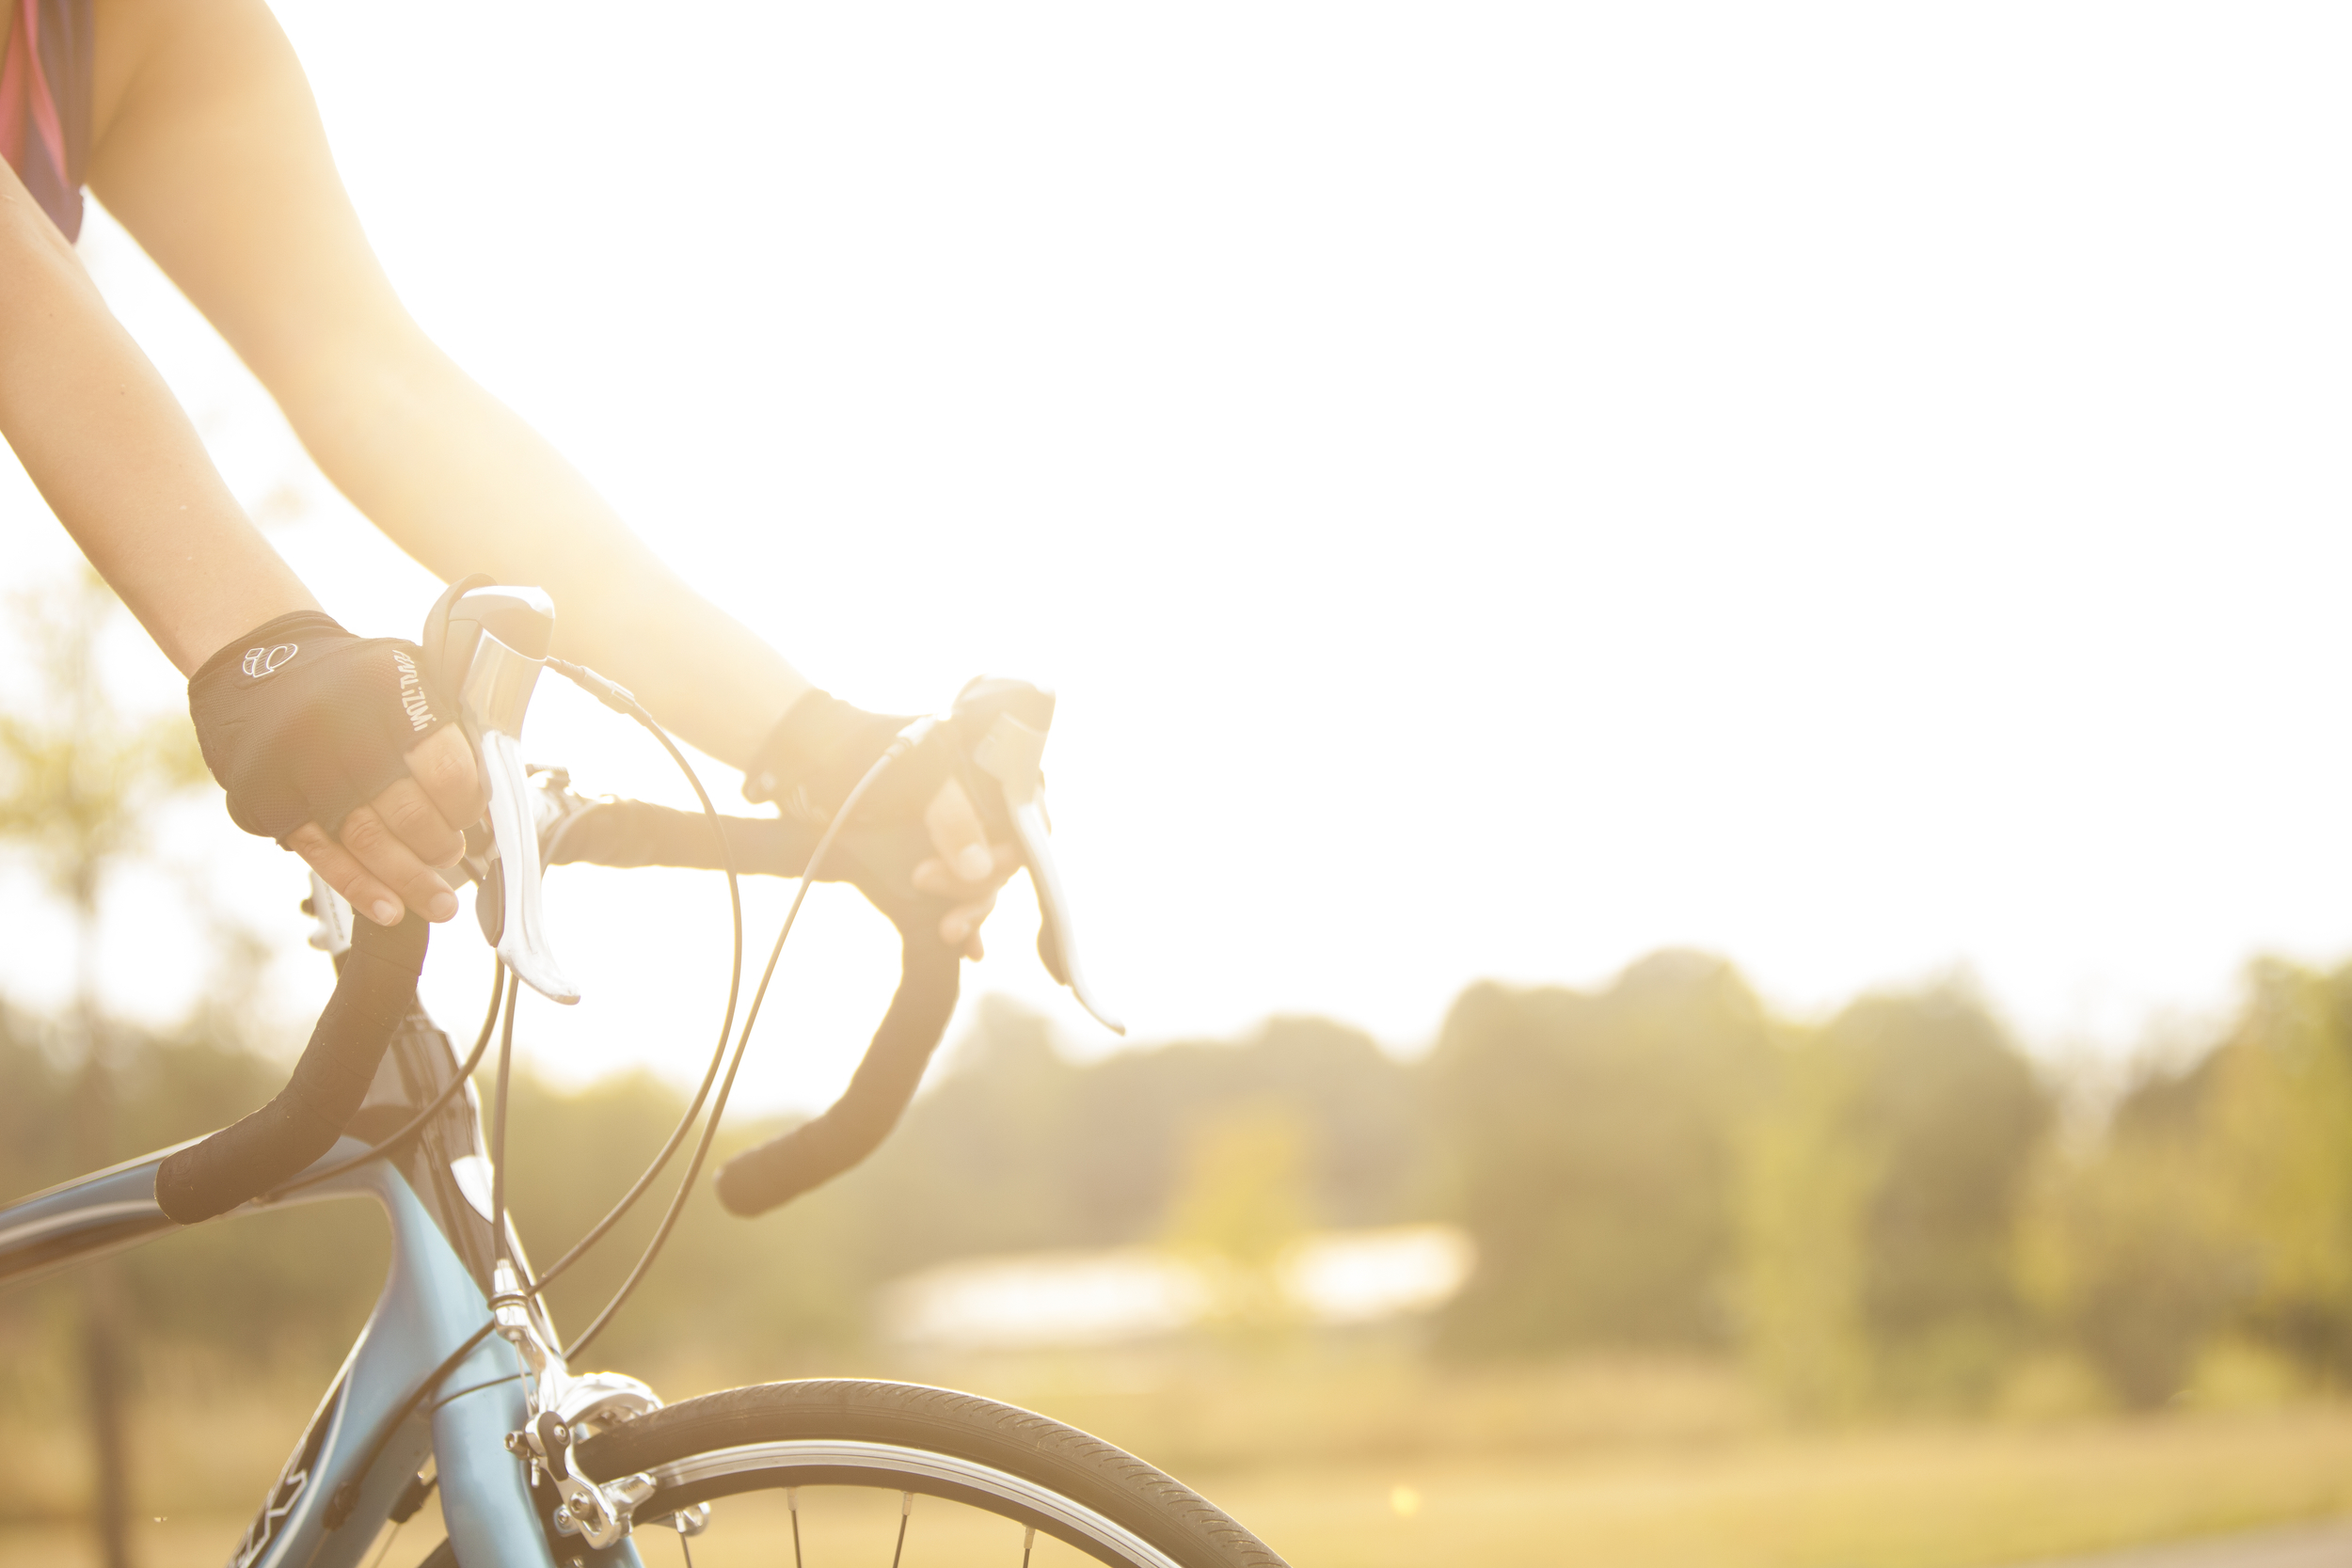 Photograph of cyclist on the Roanoke Greenway.